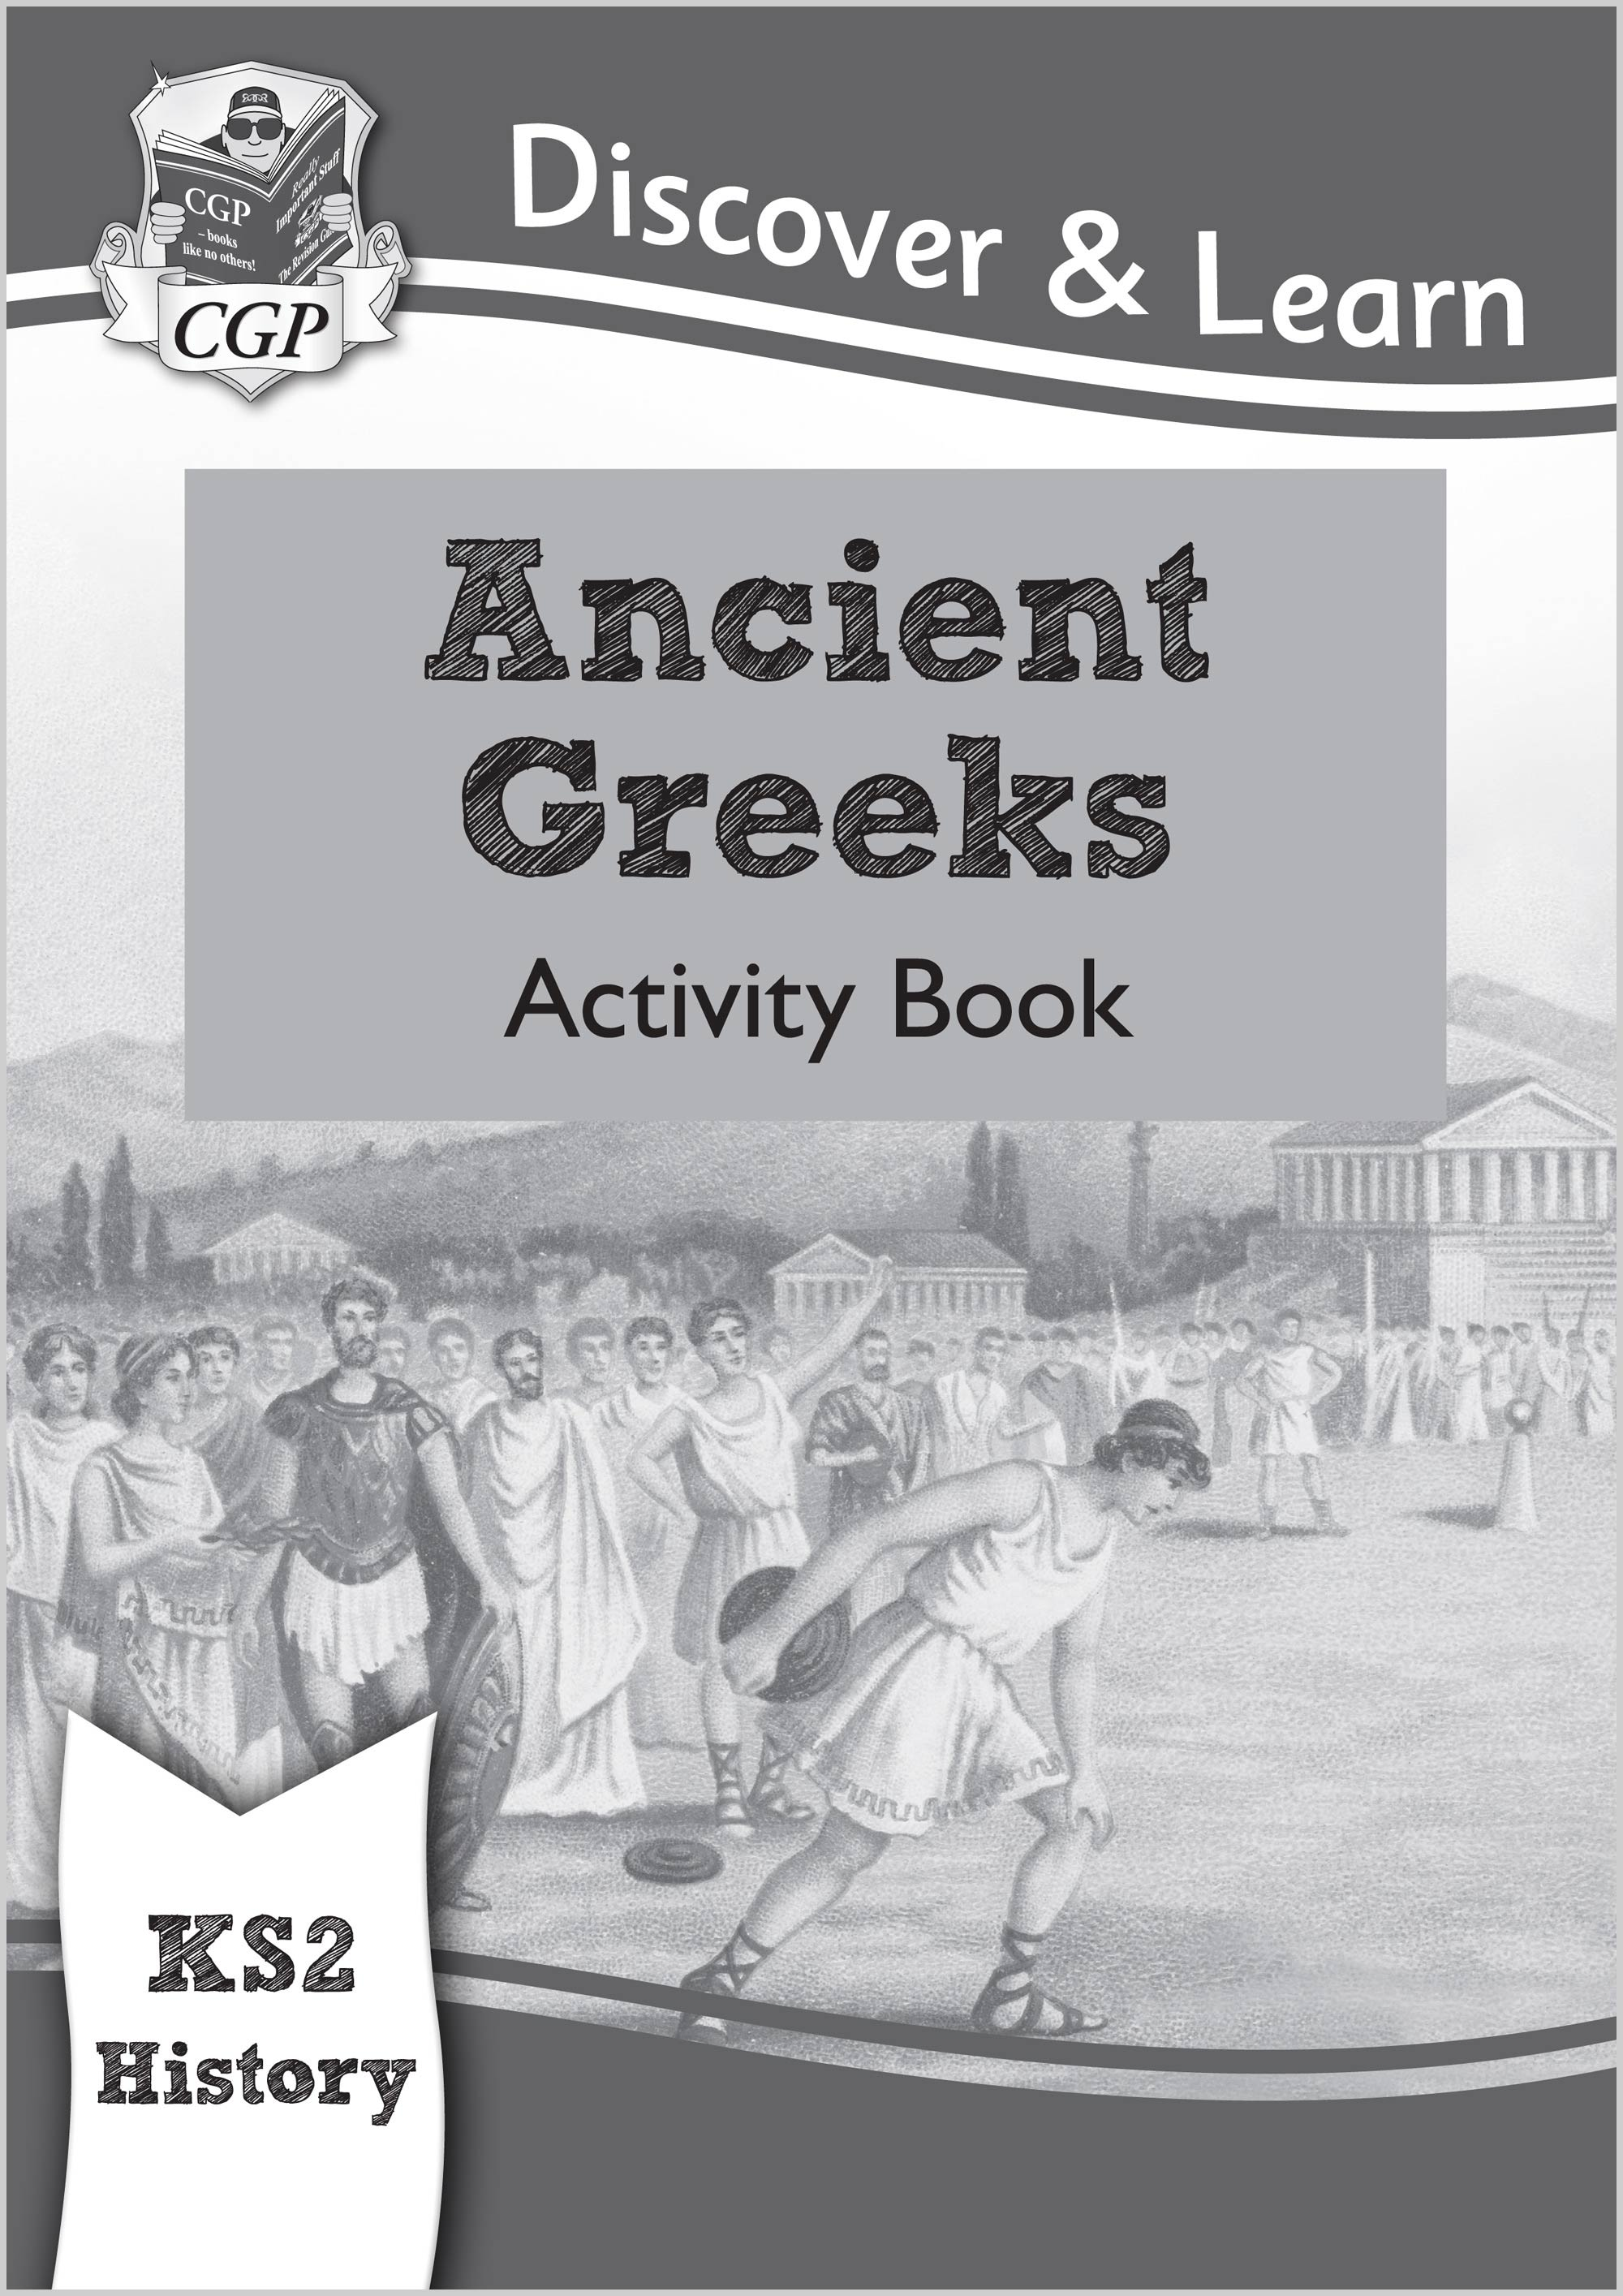 HGW21 - KS2 Discover & Learn: History - Ancient Greeks Activity Book